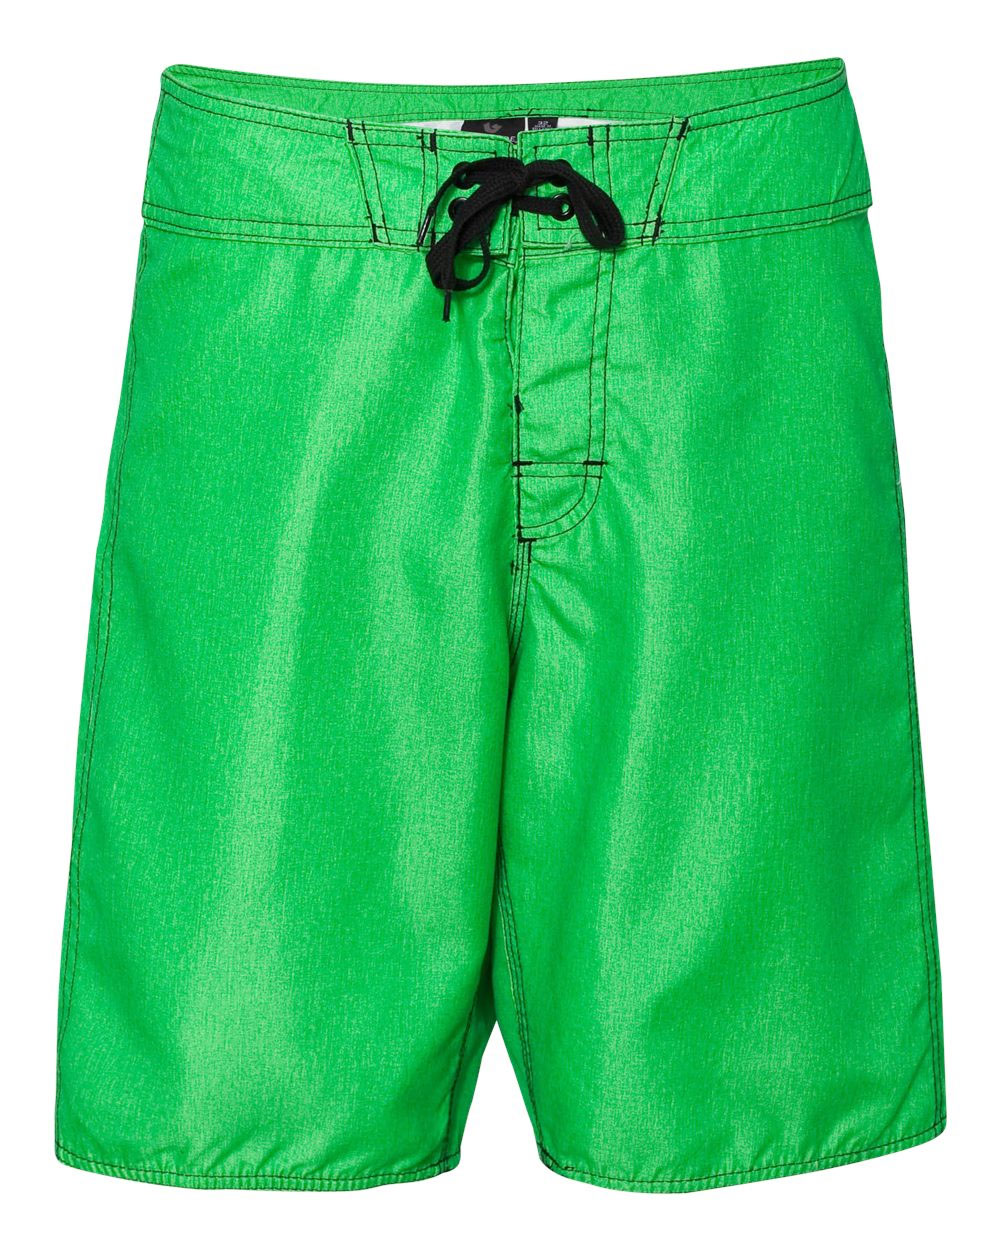 Burnside Mens Heathered Board Shorts